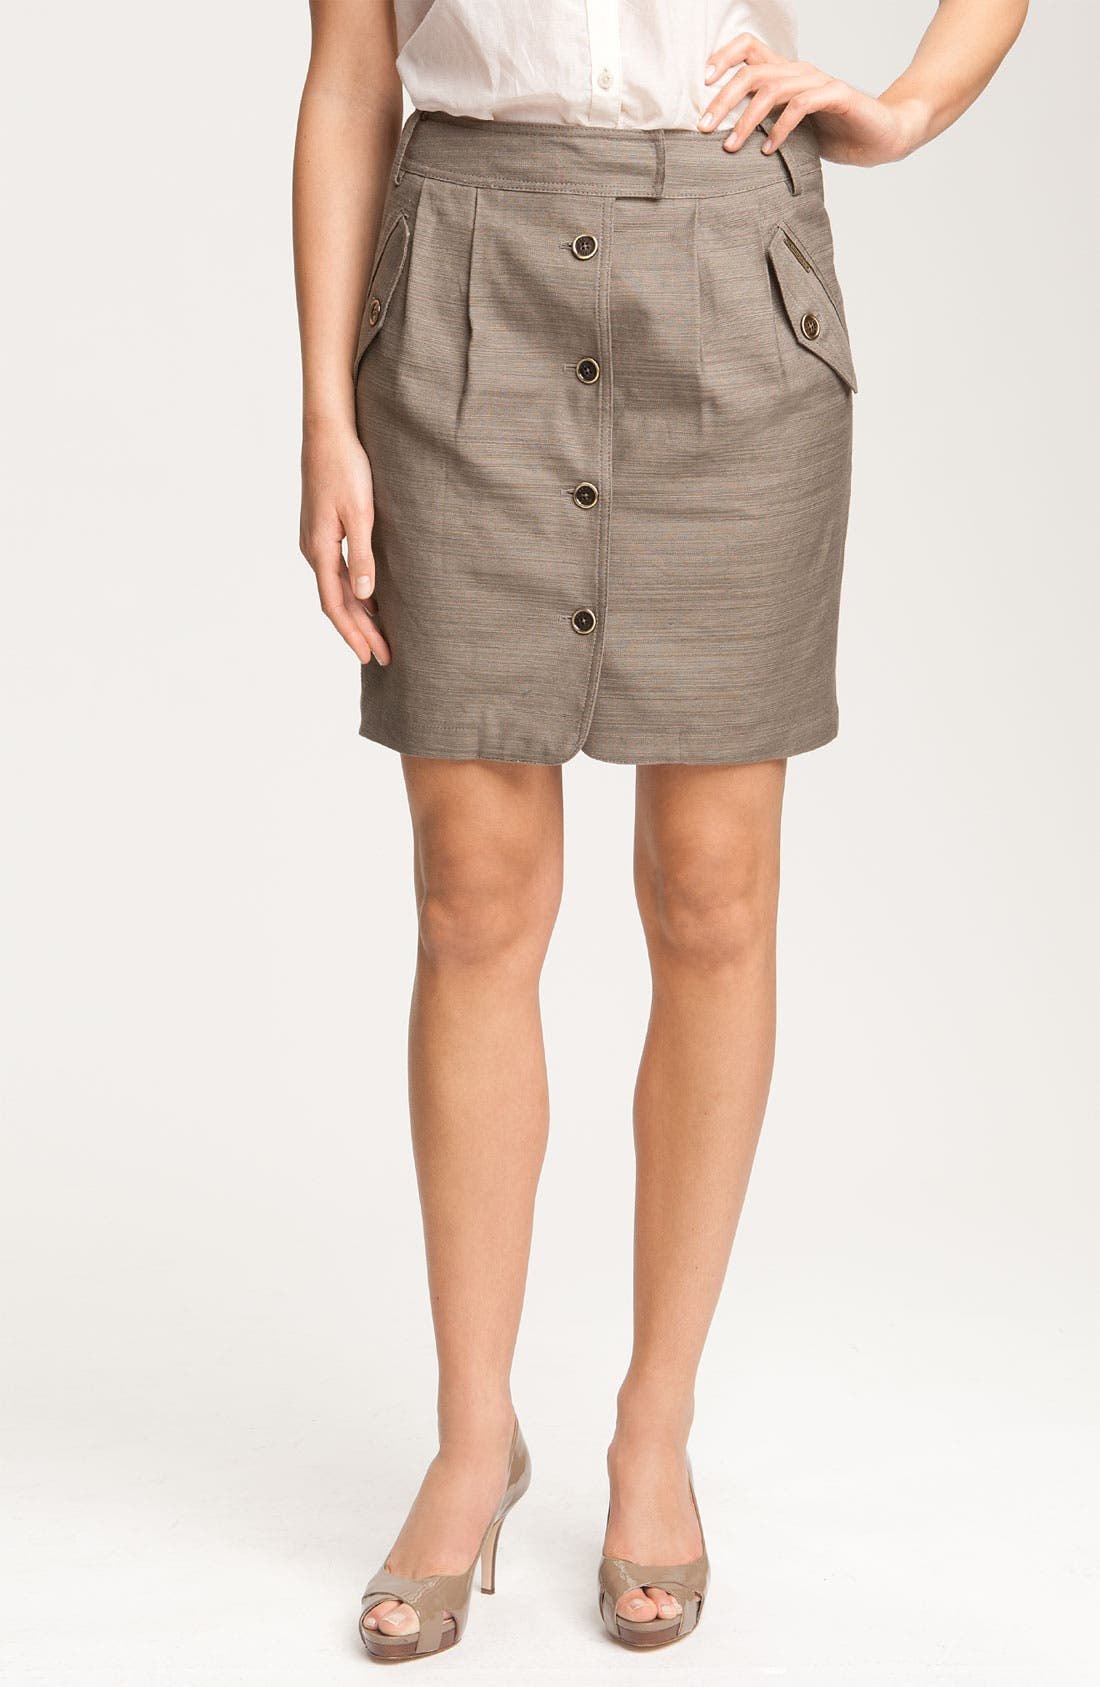 Alternate Image 1 Selected - Anne Klein Button Front Slub Weave Skirt